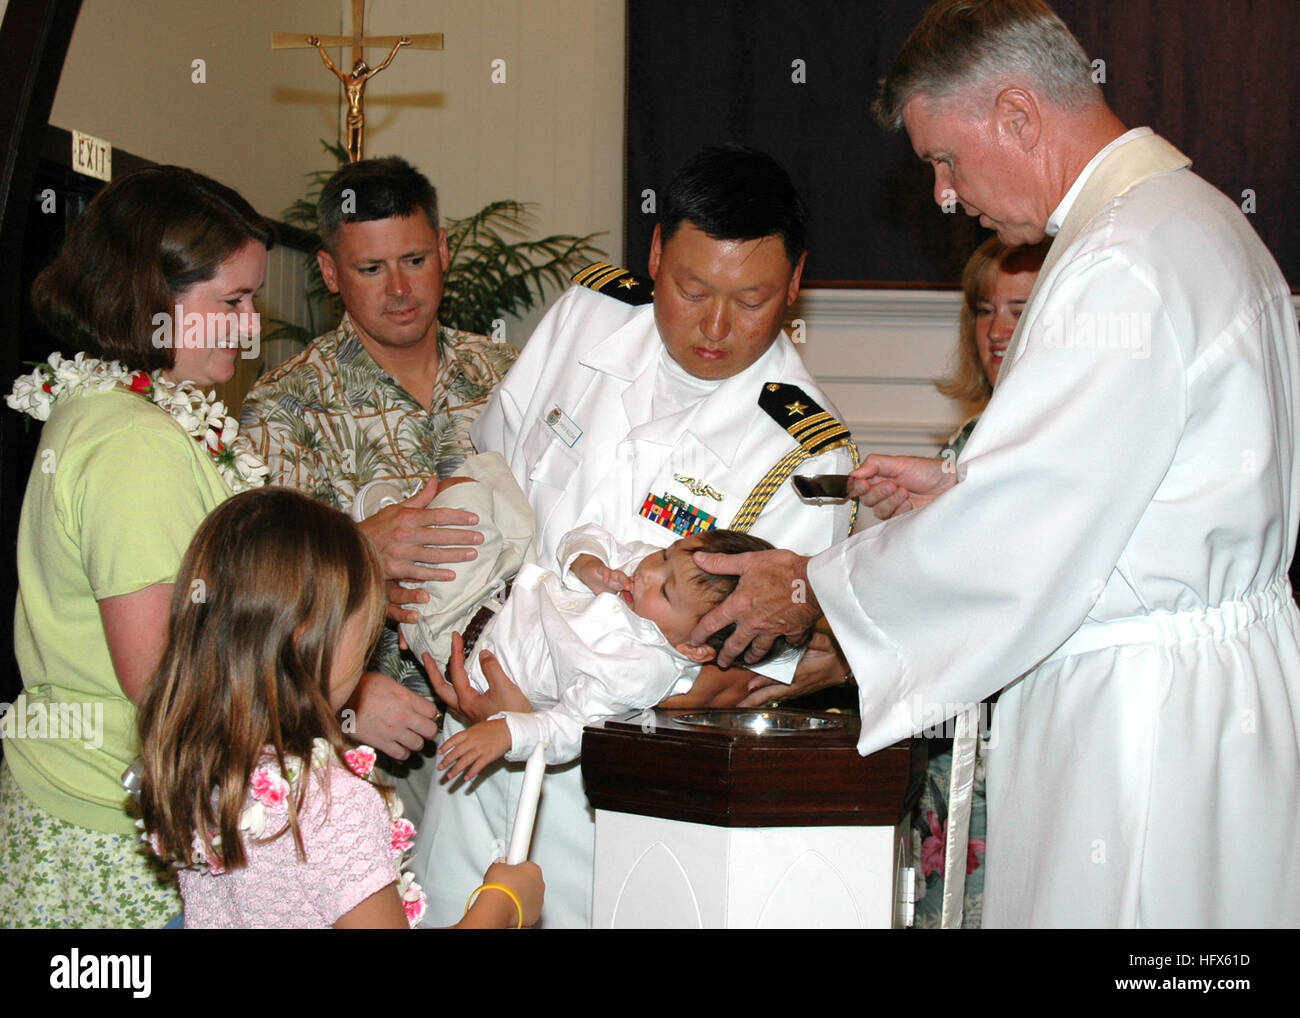 050711-N-5783F-002